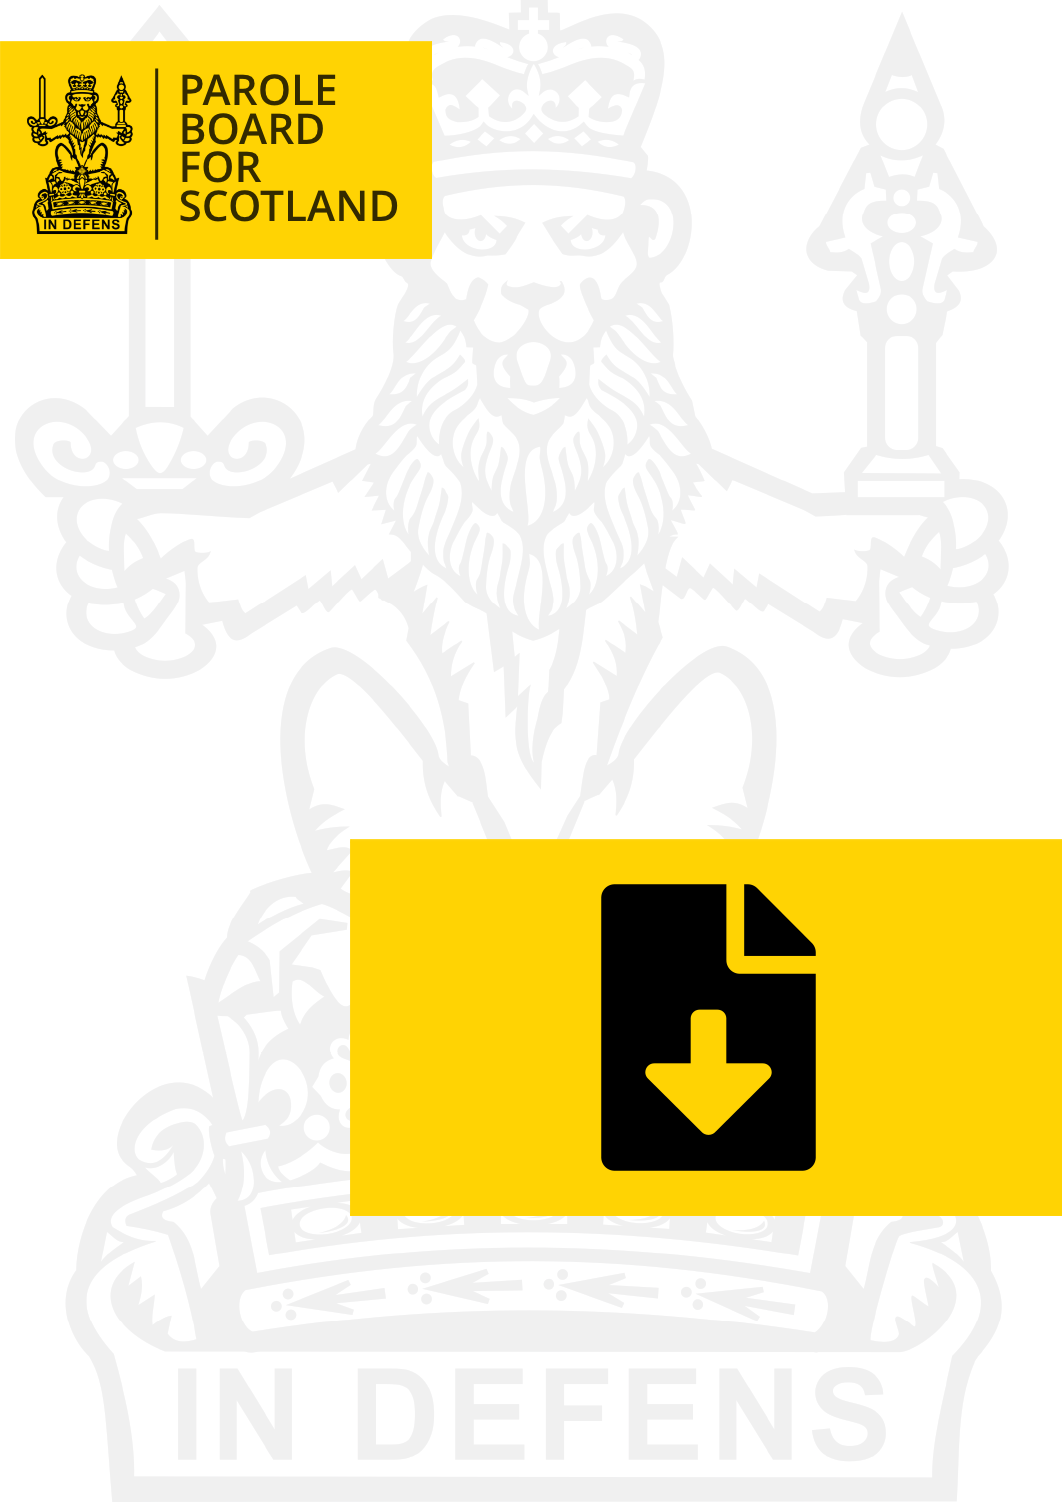 Annual Report 2015 – 2016 - Cover image